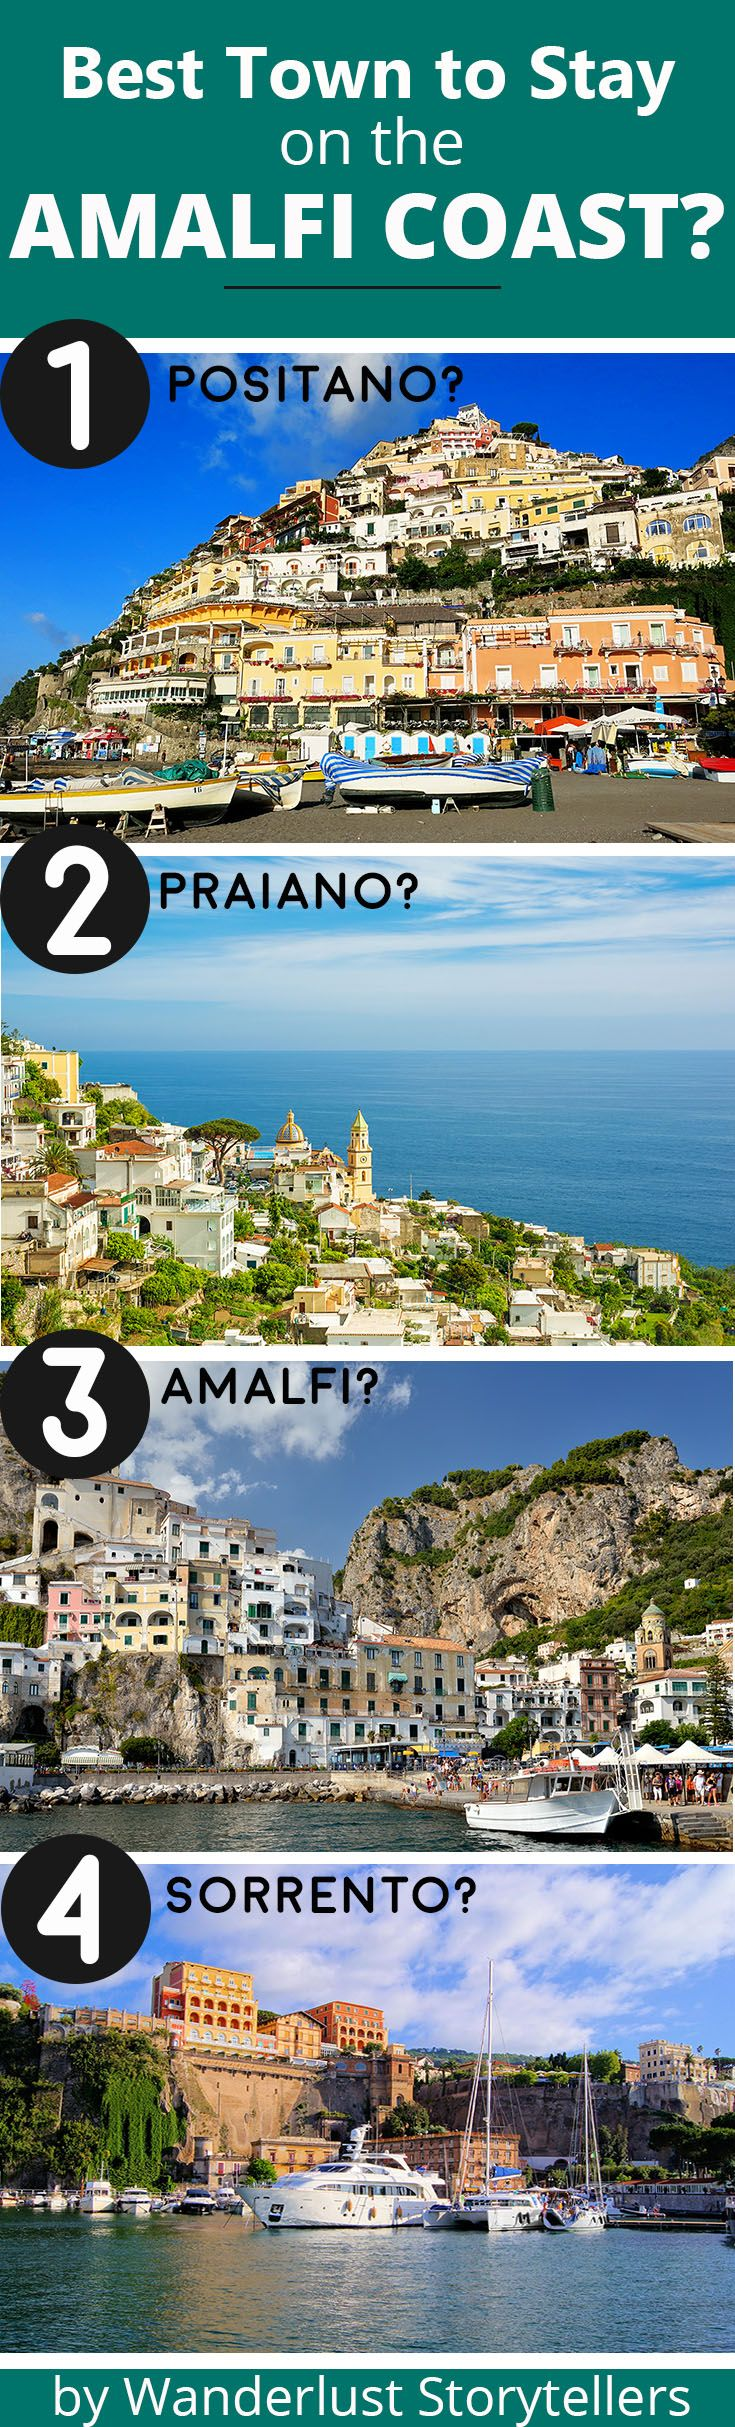 Wondering which is the best town to stay at on the Amalfi Coast?